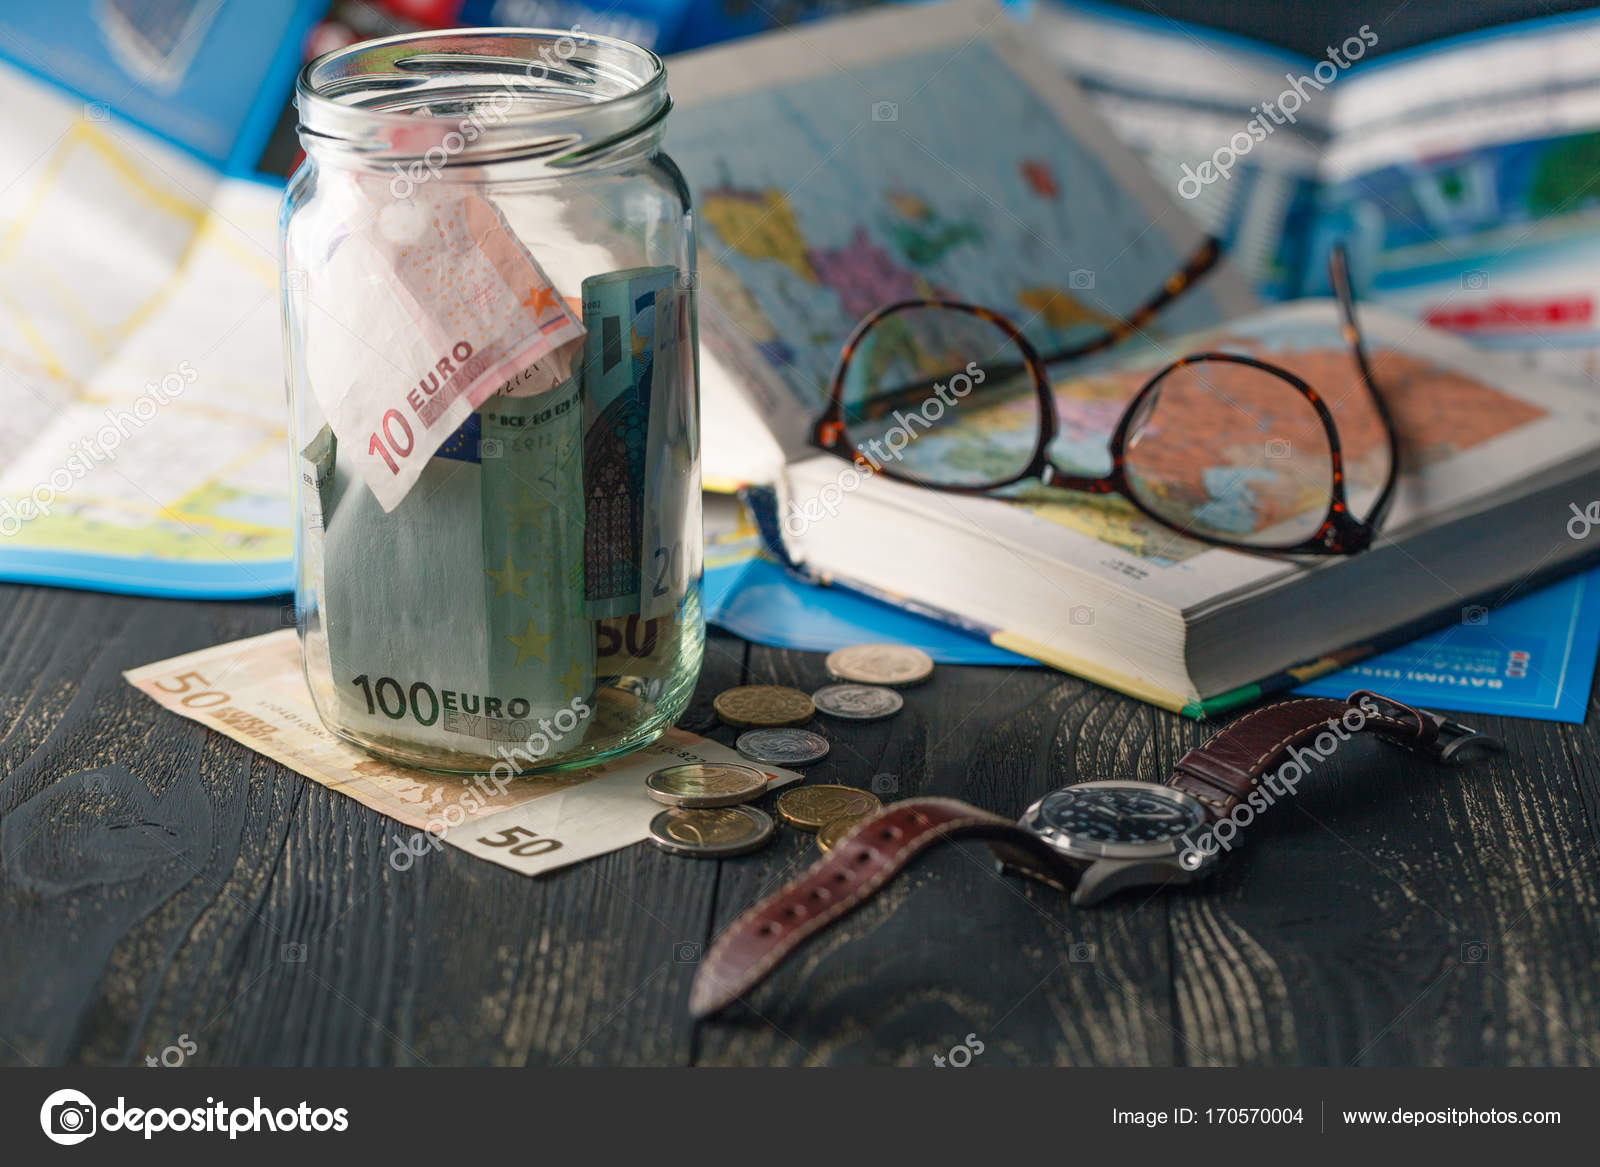 Travel budget vacation money savings in a glass jar on world m travel budget vacation money savings in a glass jar on world map photo by andreycherkasov gumiabroncs Choice Image